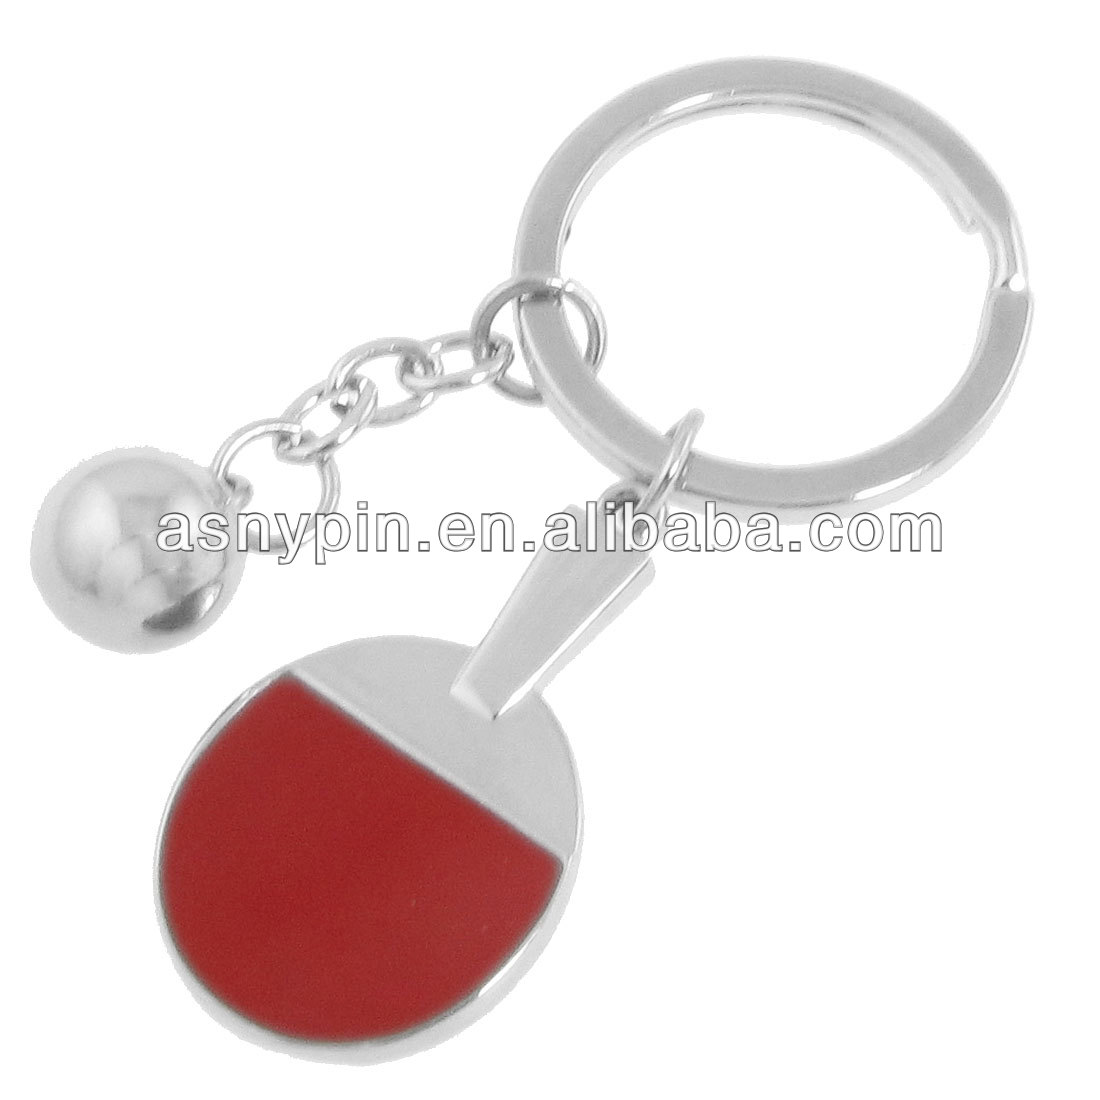 2014 New products 3D Keychain Sports table tennis ping pong racket